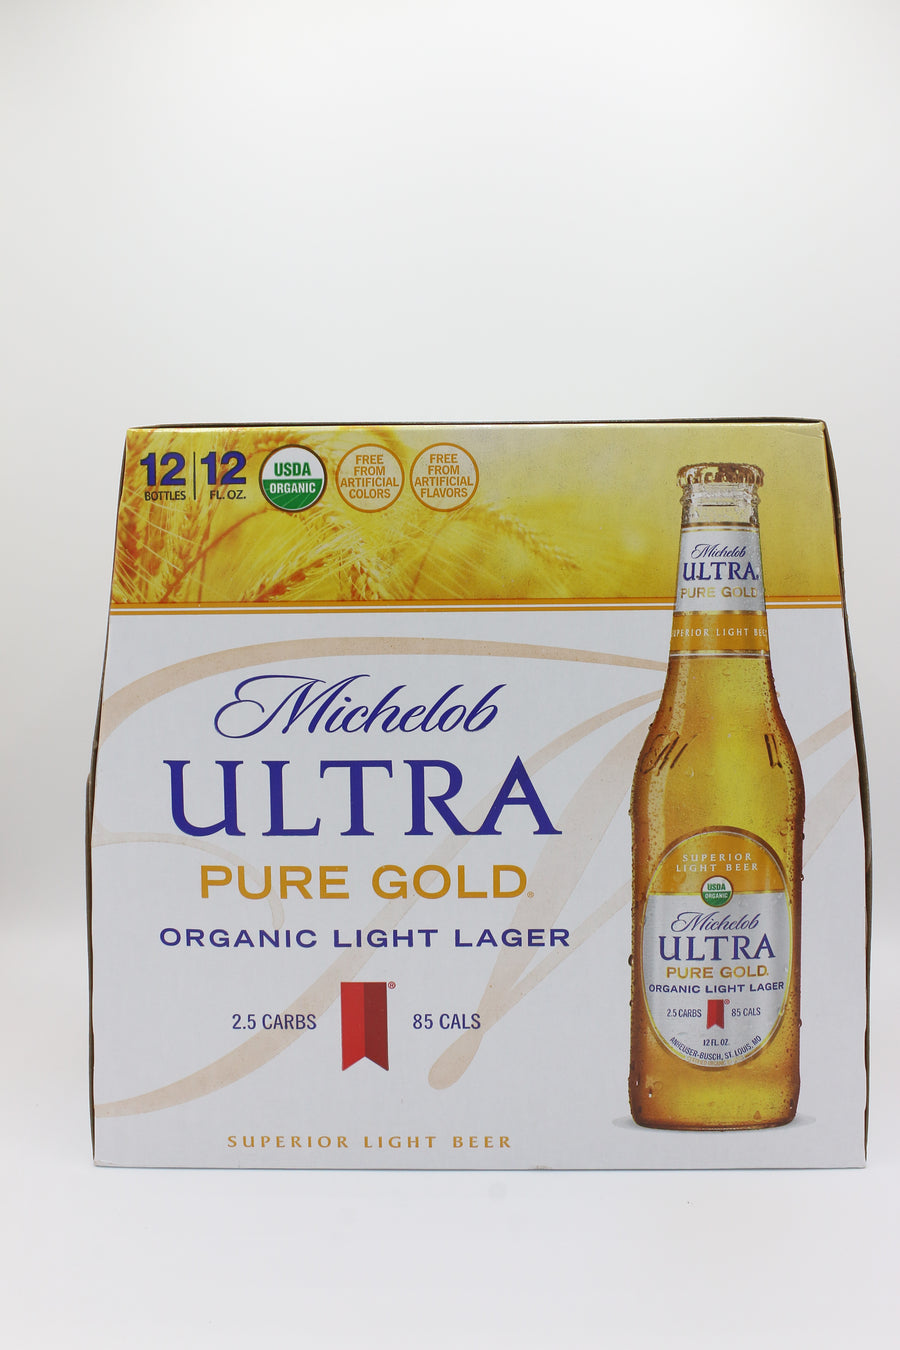 MICH ULTRA PURE GOLD 12PK BOTTLES